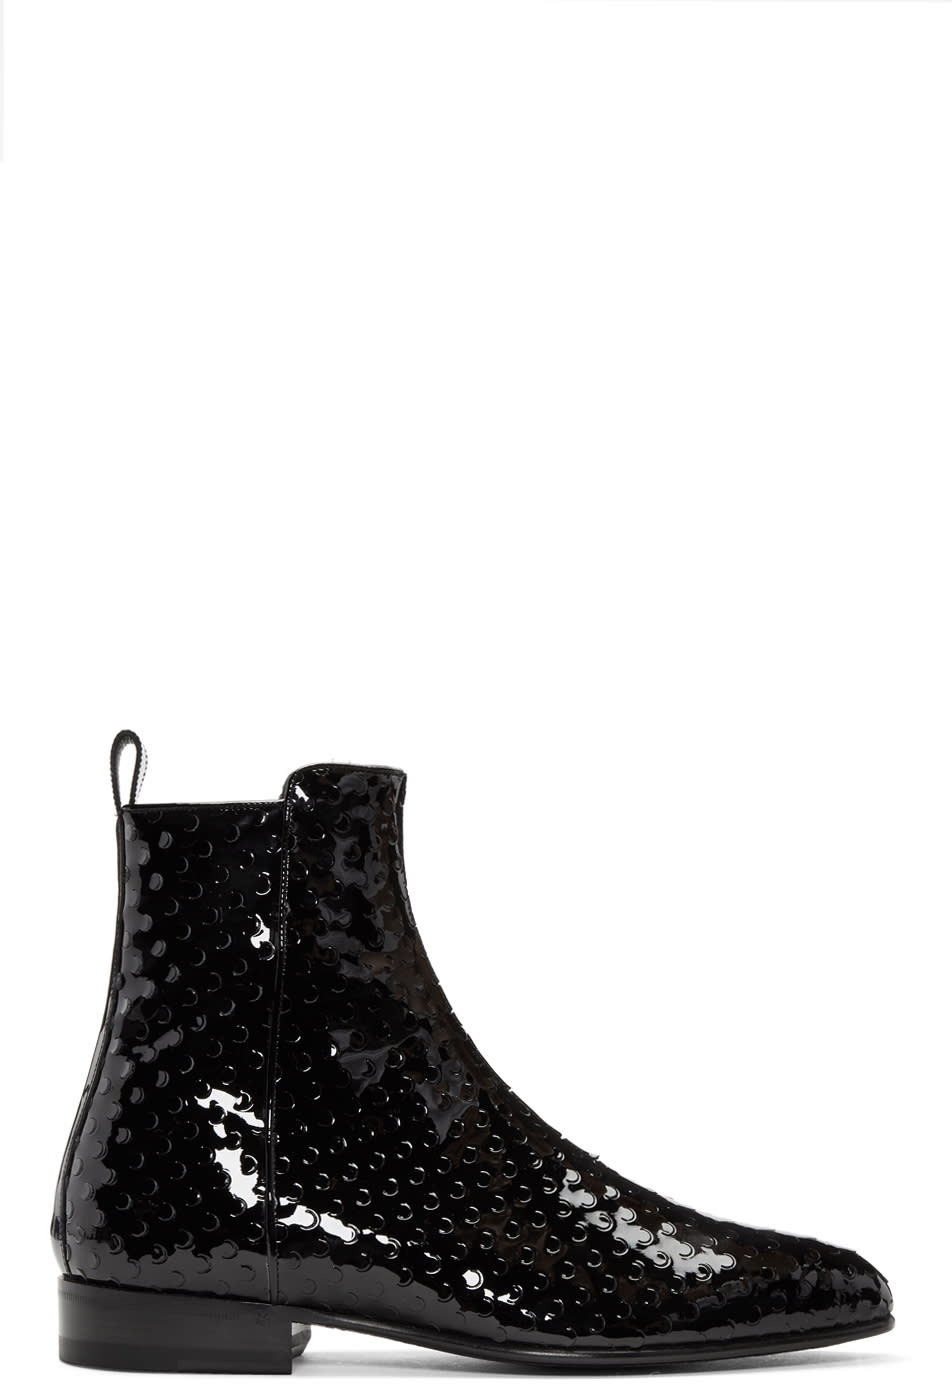 Black Perforated Wyatt Zip Boots